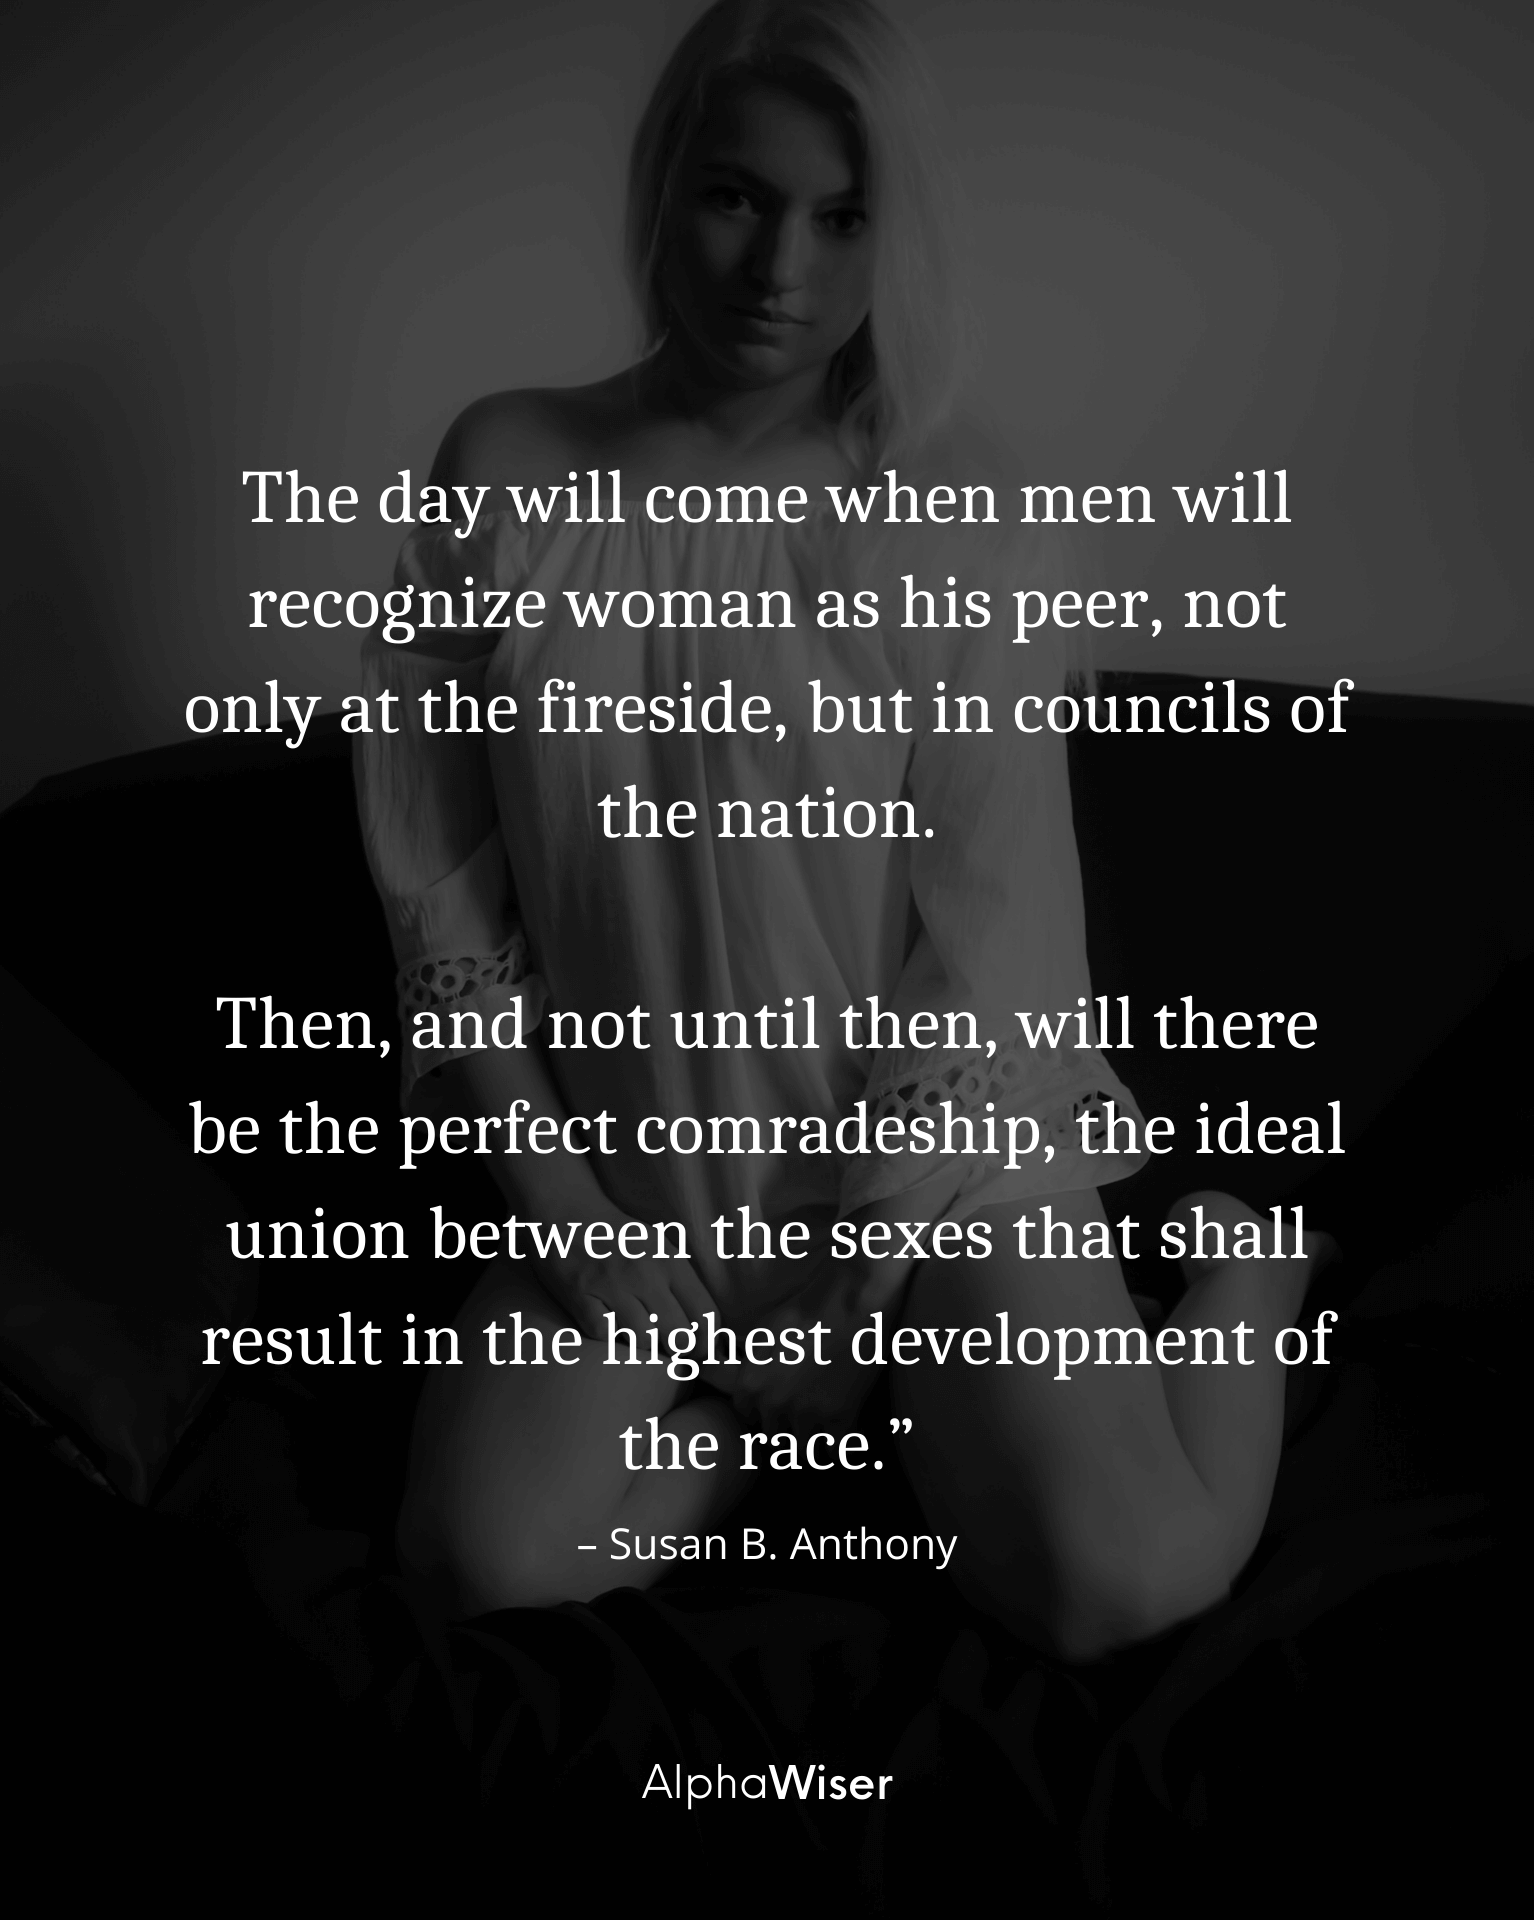 The day will come when men will recognize woman as his peer, not only at the fireside, but in councils of the nation.